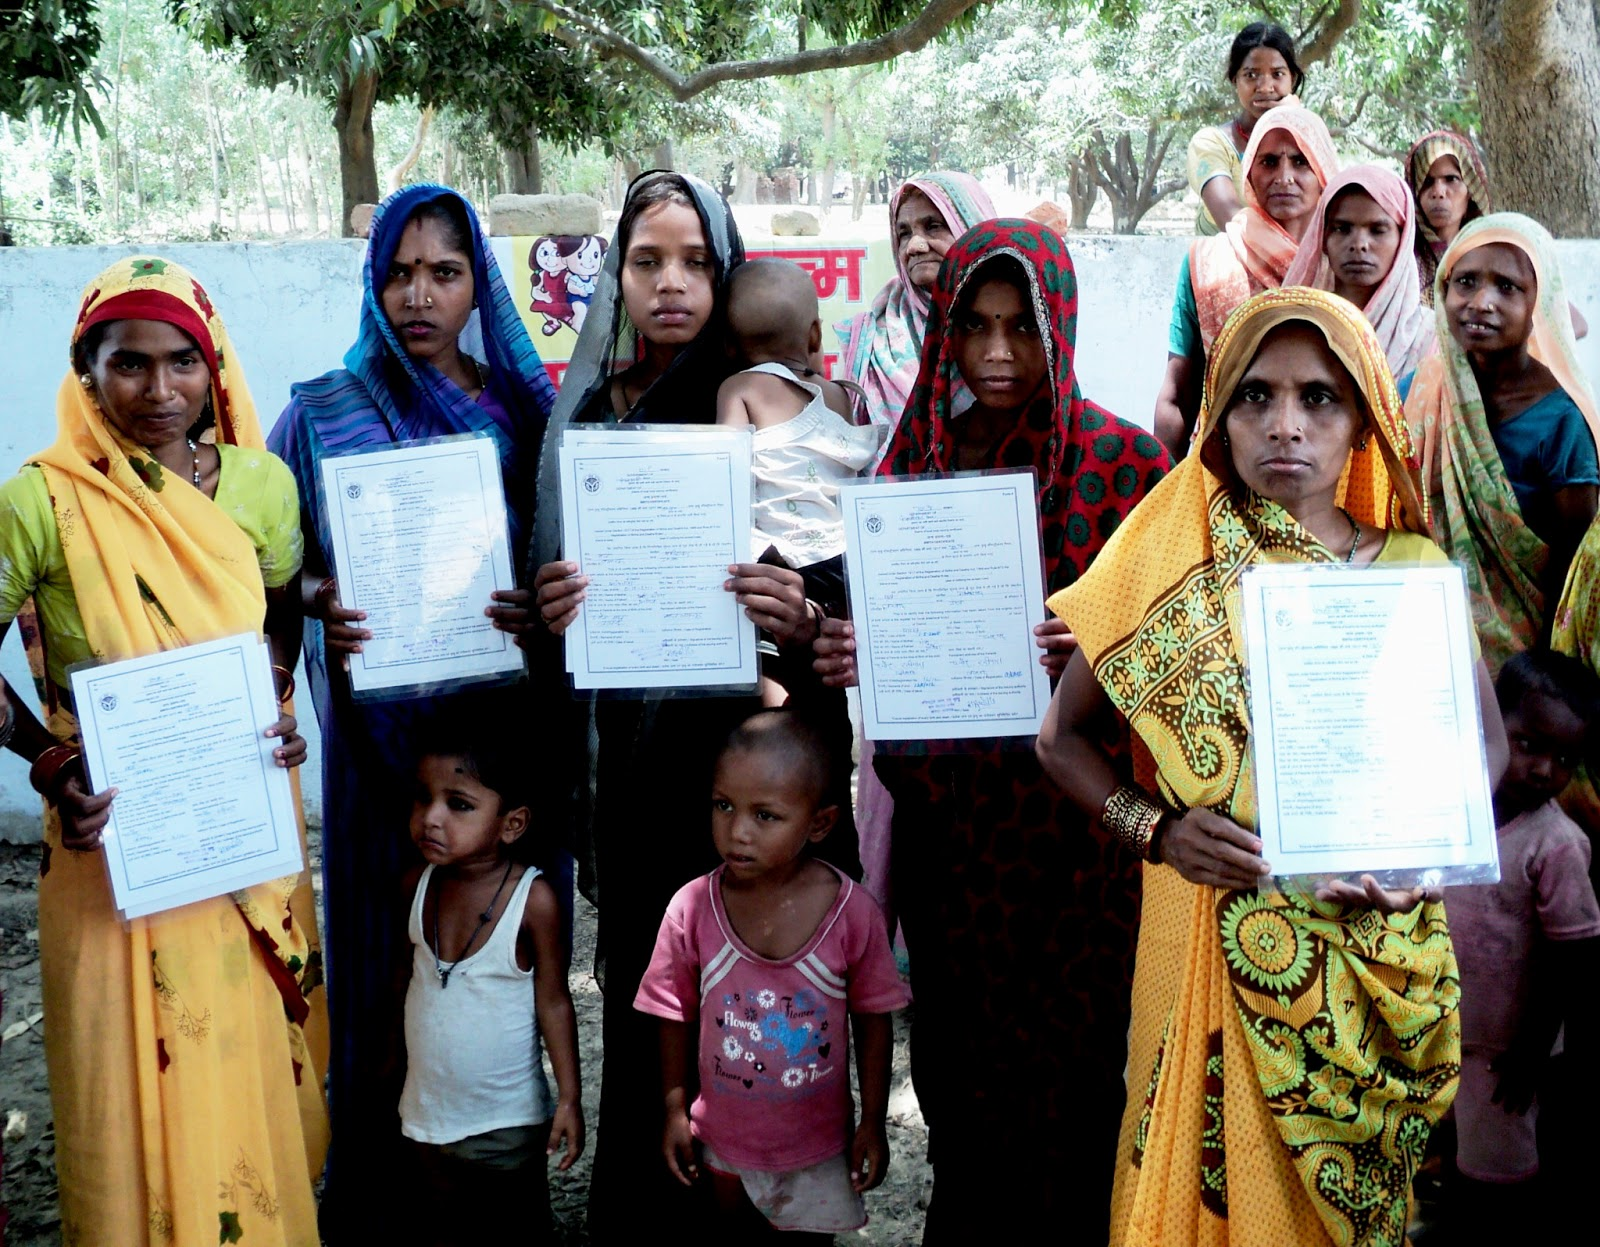 Citizen news service cns invisible births are major roadblock the national figure is 954 like in all other development indicators uttar pradesh also lags behind in the child birth registration aiddatafo Images